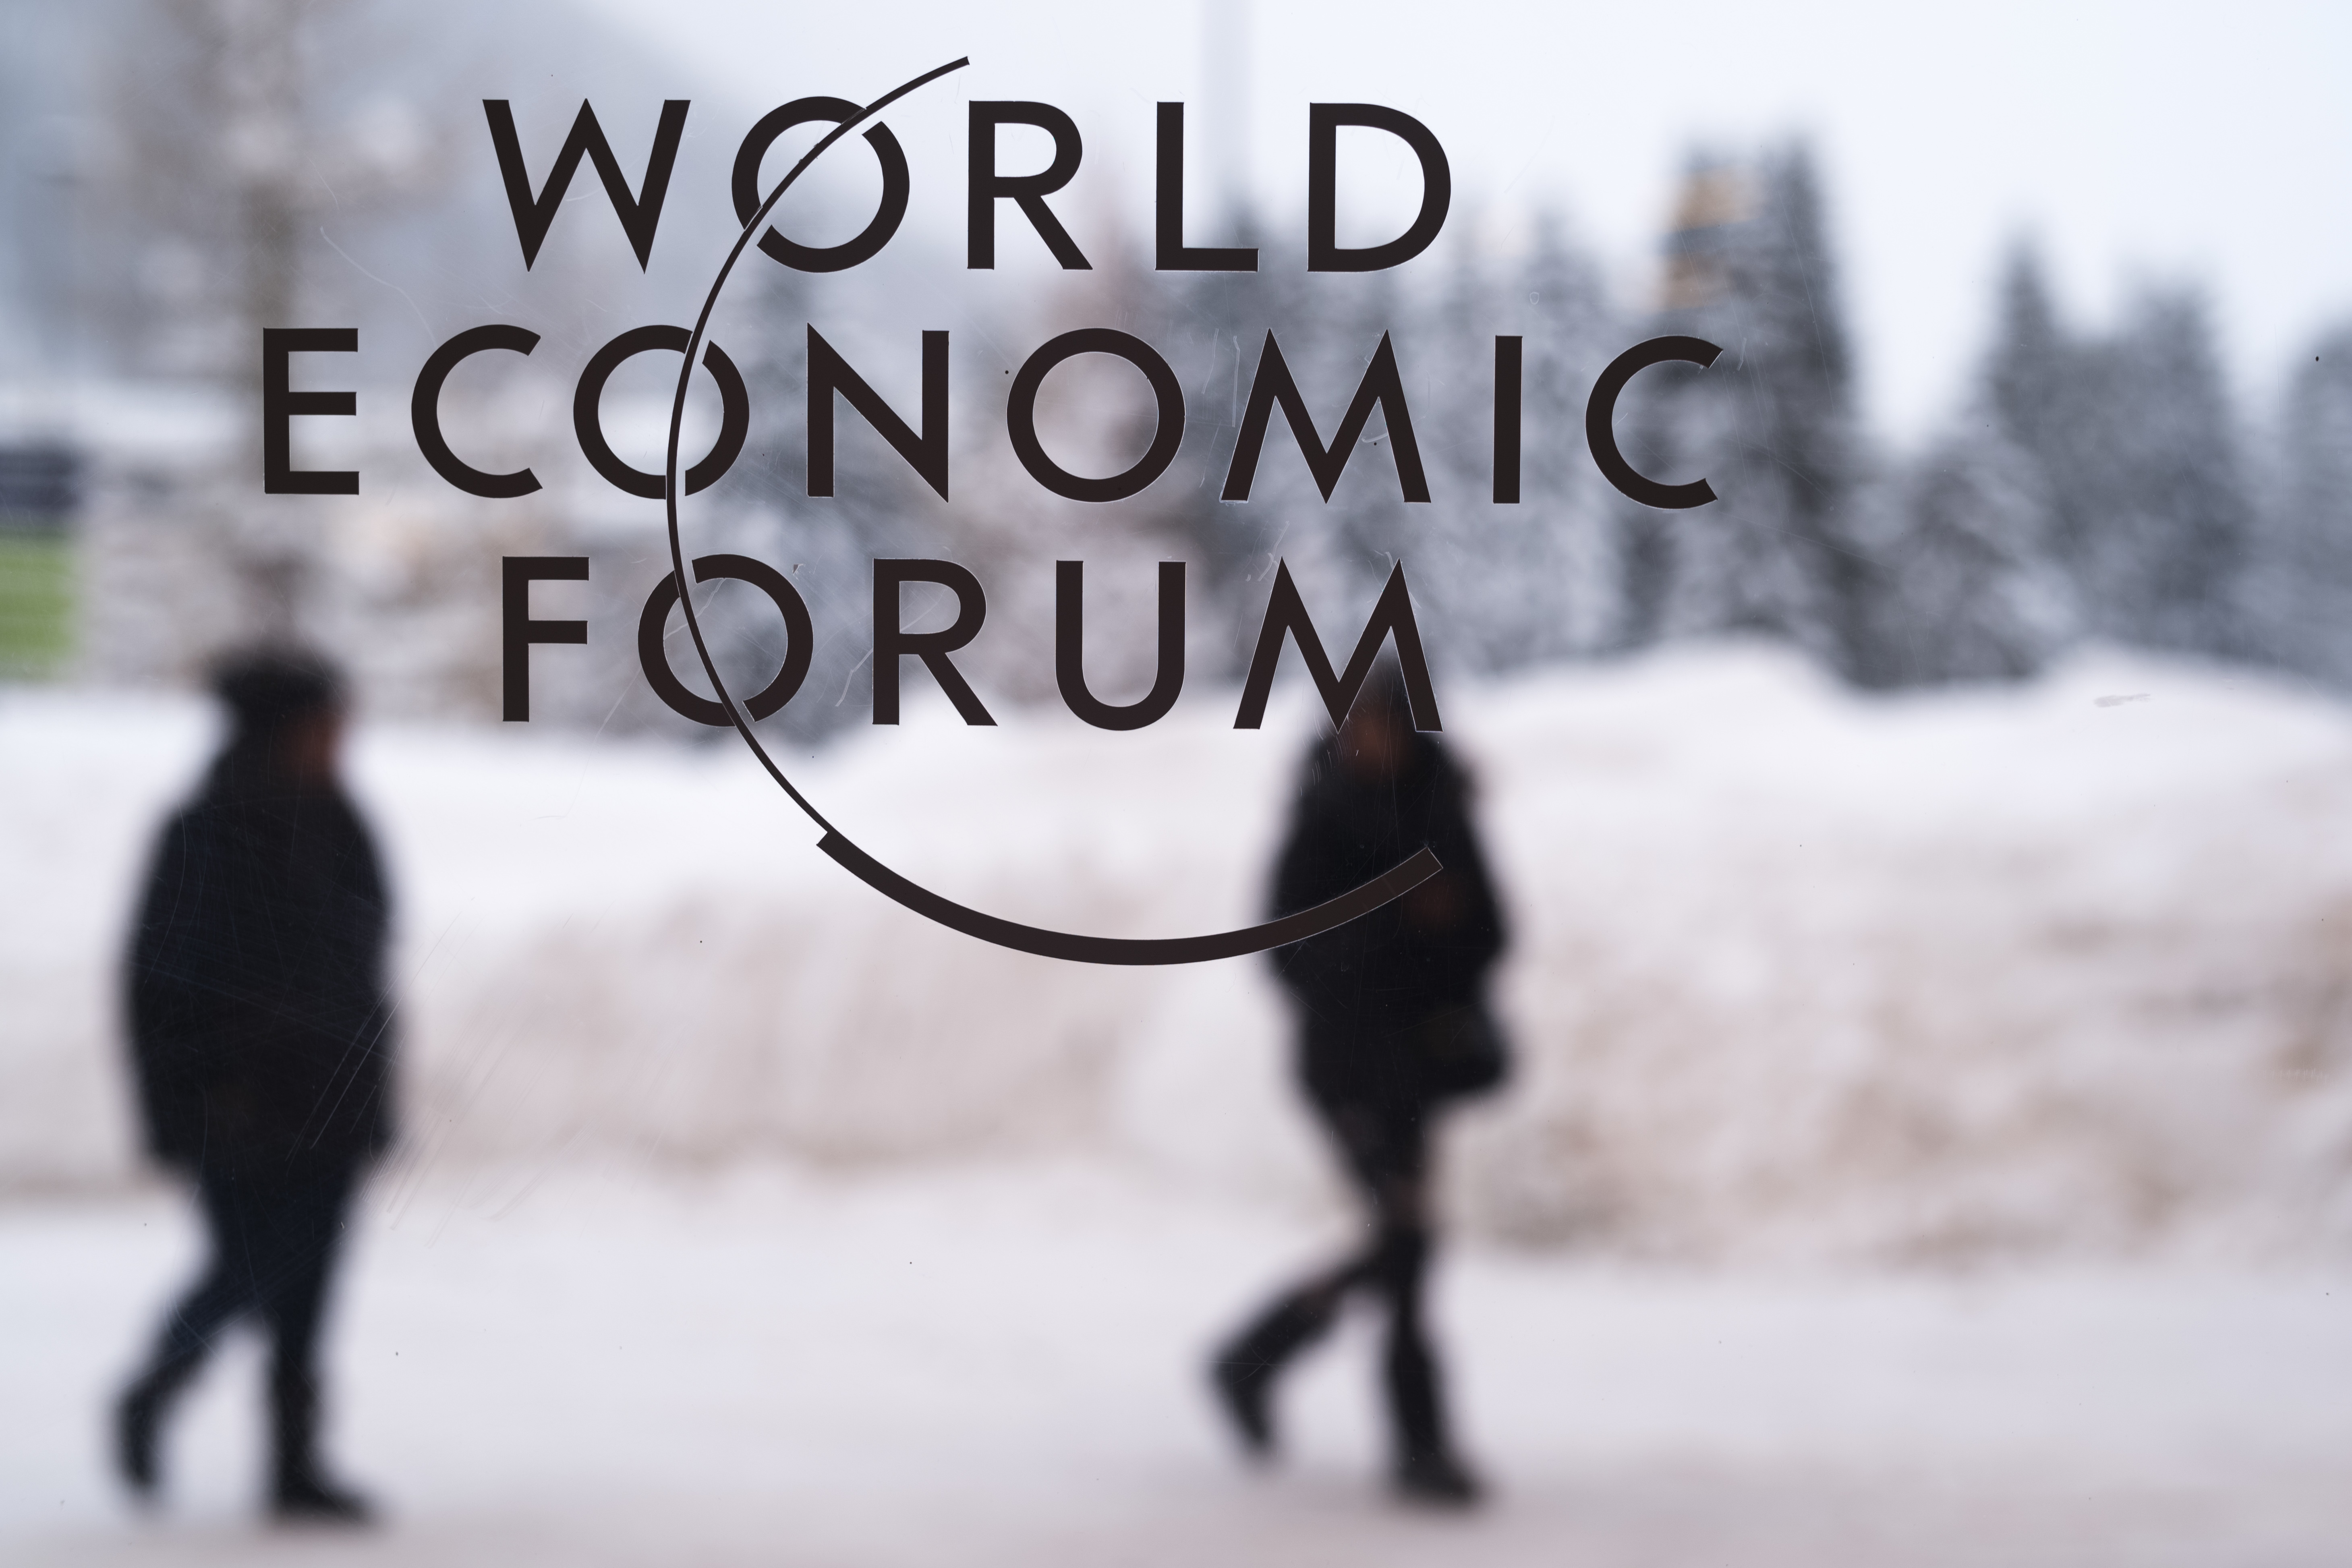 Two persons walk behind the logo of the World Economic Forum at the meeting's conference center in Davos, Switzerland, Sunday, Jan. 21, 2018. One question looms as President Donald Trump packs his bags and heads for the mountains of Switzerland later this week: How will the diet Coke-loving nationalist fit in with the champagne-swilling globalists he'll encounter at the World Economic Forum in Davos?  (AP Photo/Markus Schreiber)